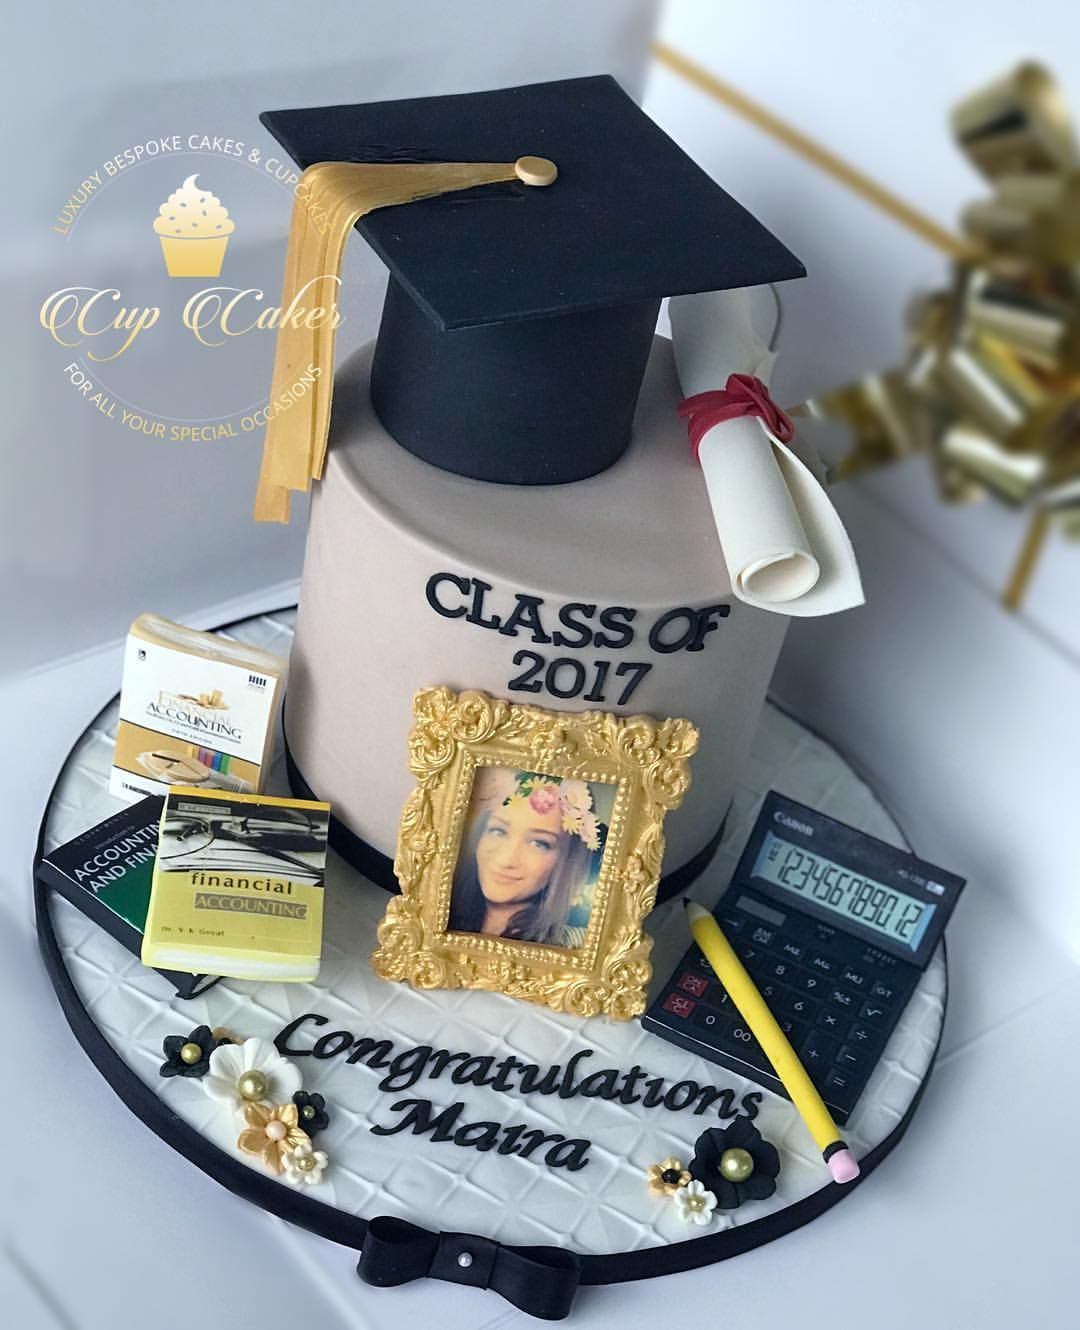 More Graduation Graduation Graduationparty Graduate Graduationceremony Graduation Party Cake High School Graduation Party Decorations Graduation Cakes